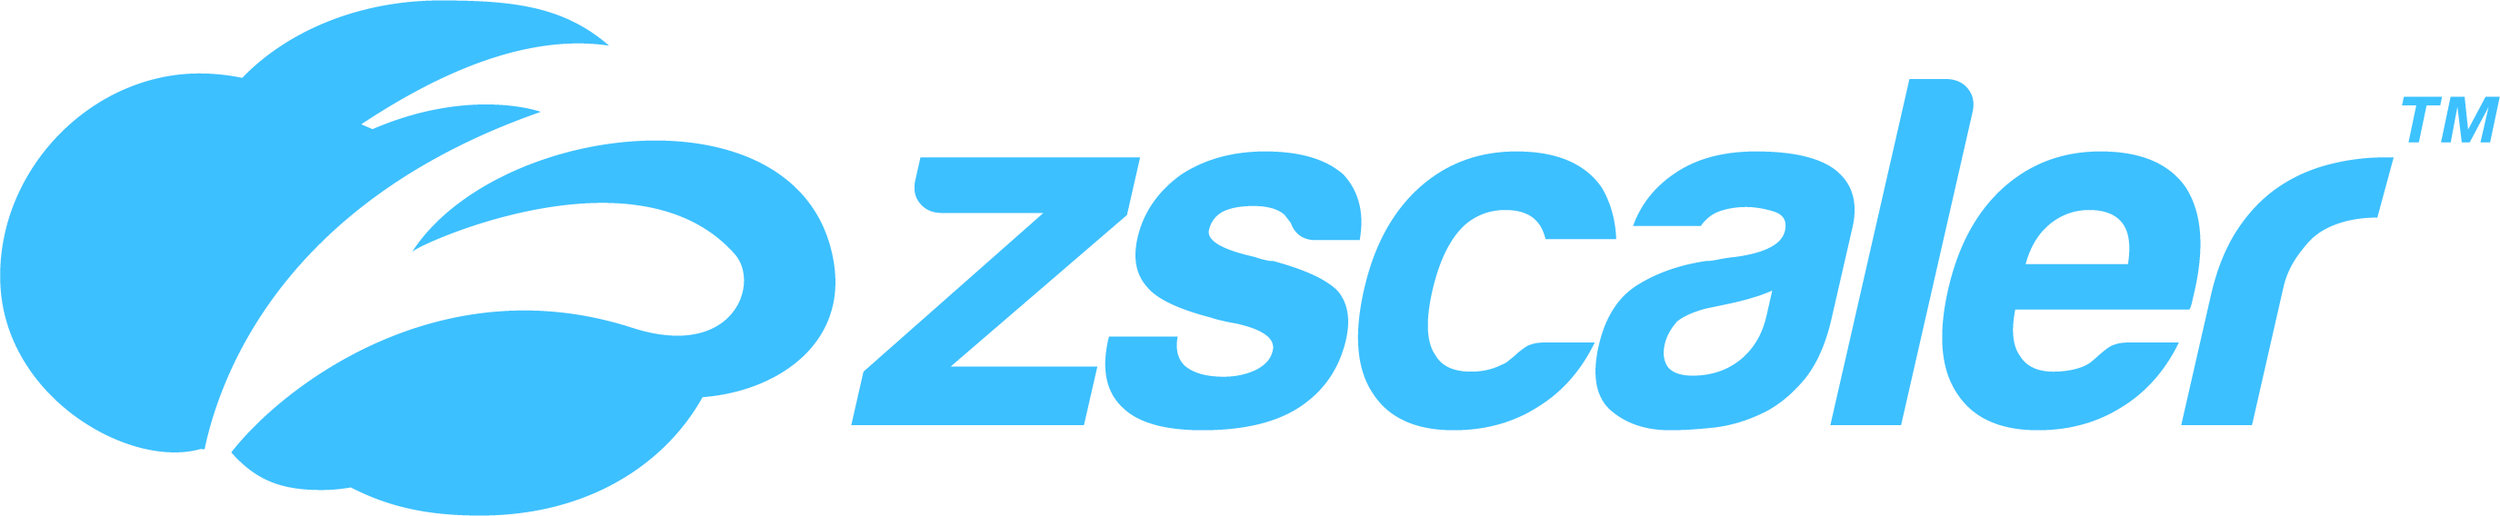 Zscaler-Logo-TM-Blue-PMS-Coated-Jan2017.jpg